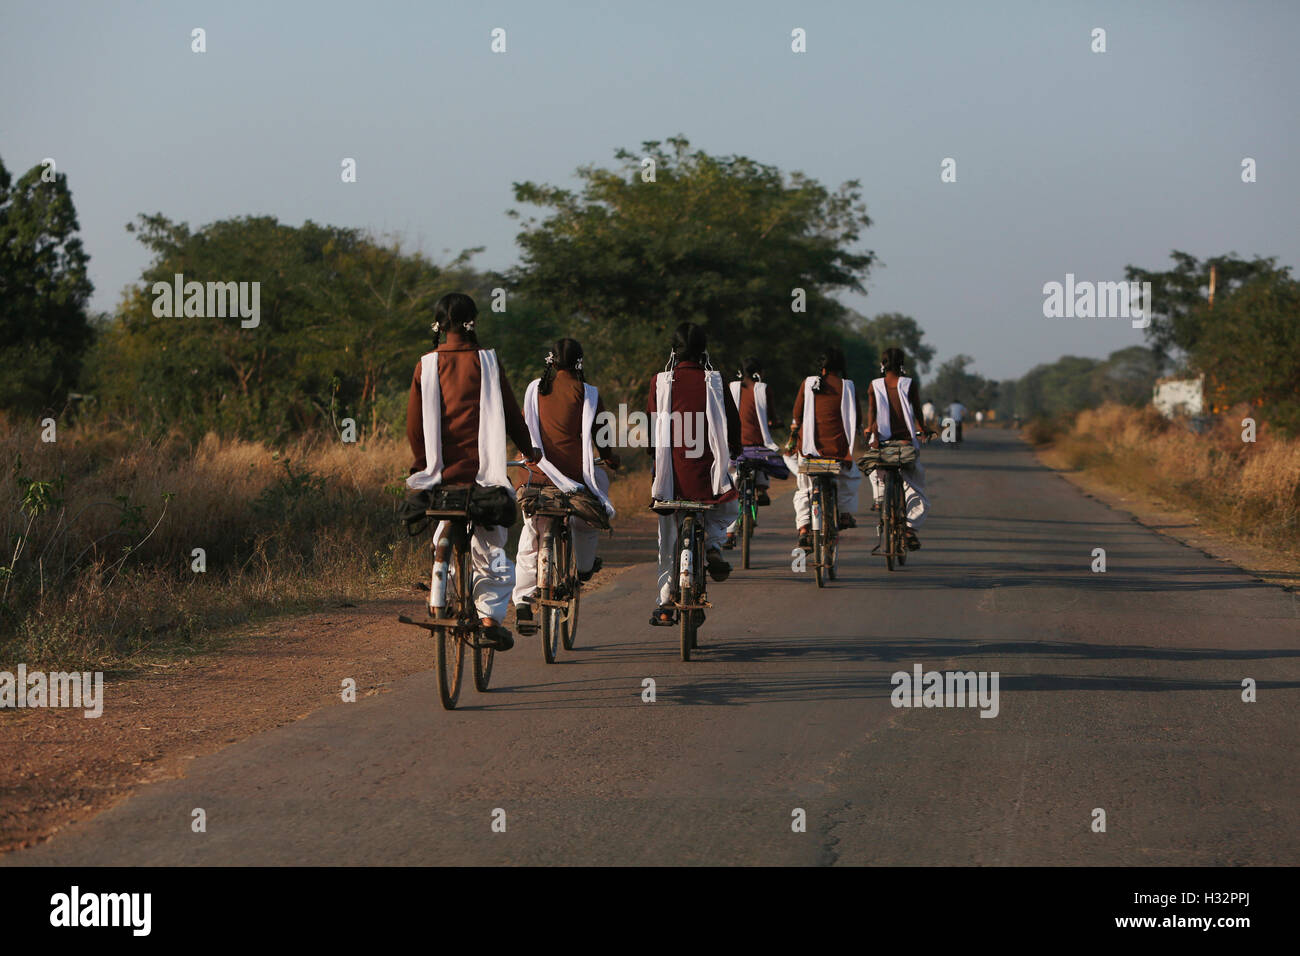 School Girls, Khairmal Village , Saraipali Tahsil, Mahasamund District, Chattisgarh, India - Stock Image